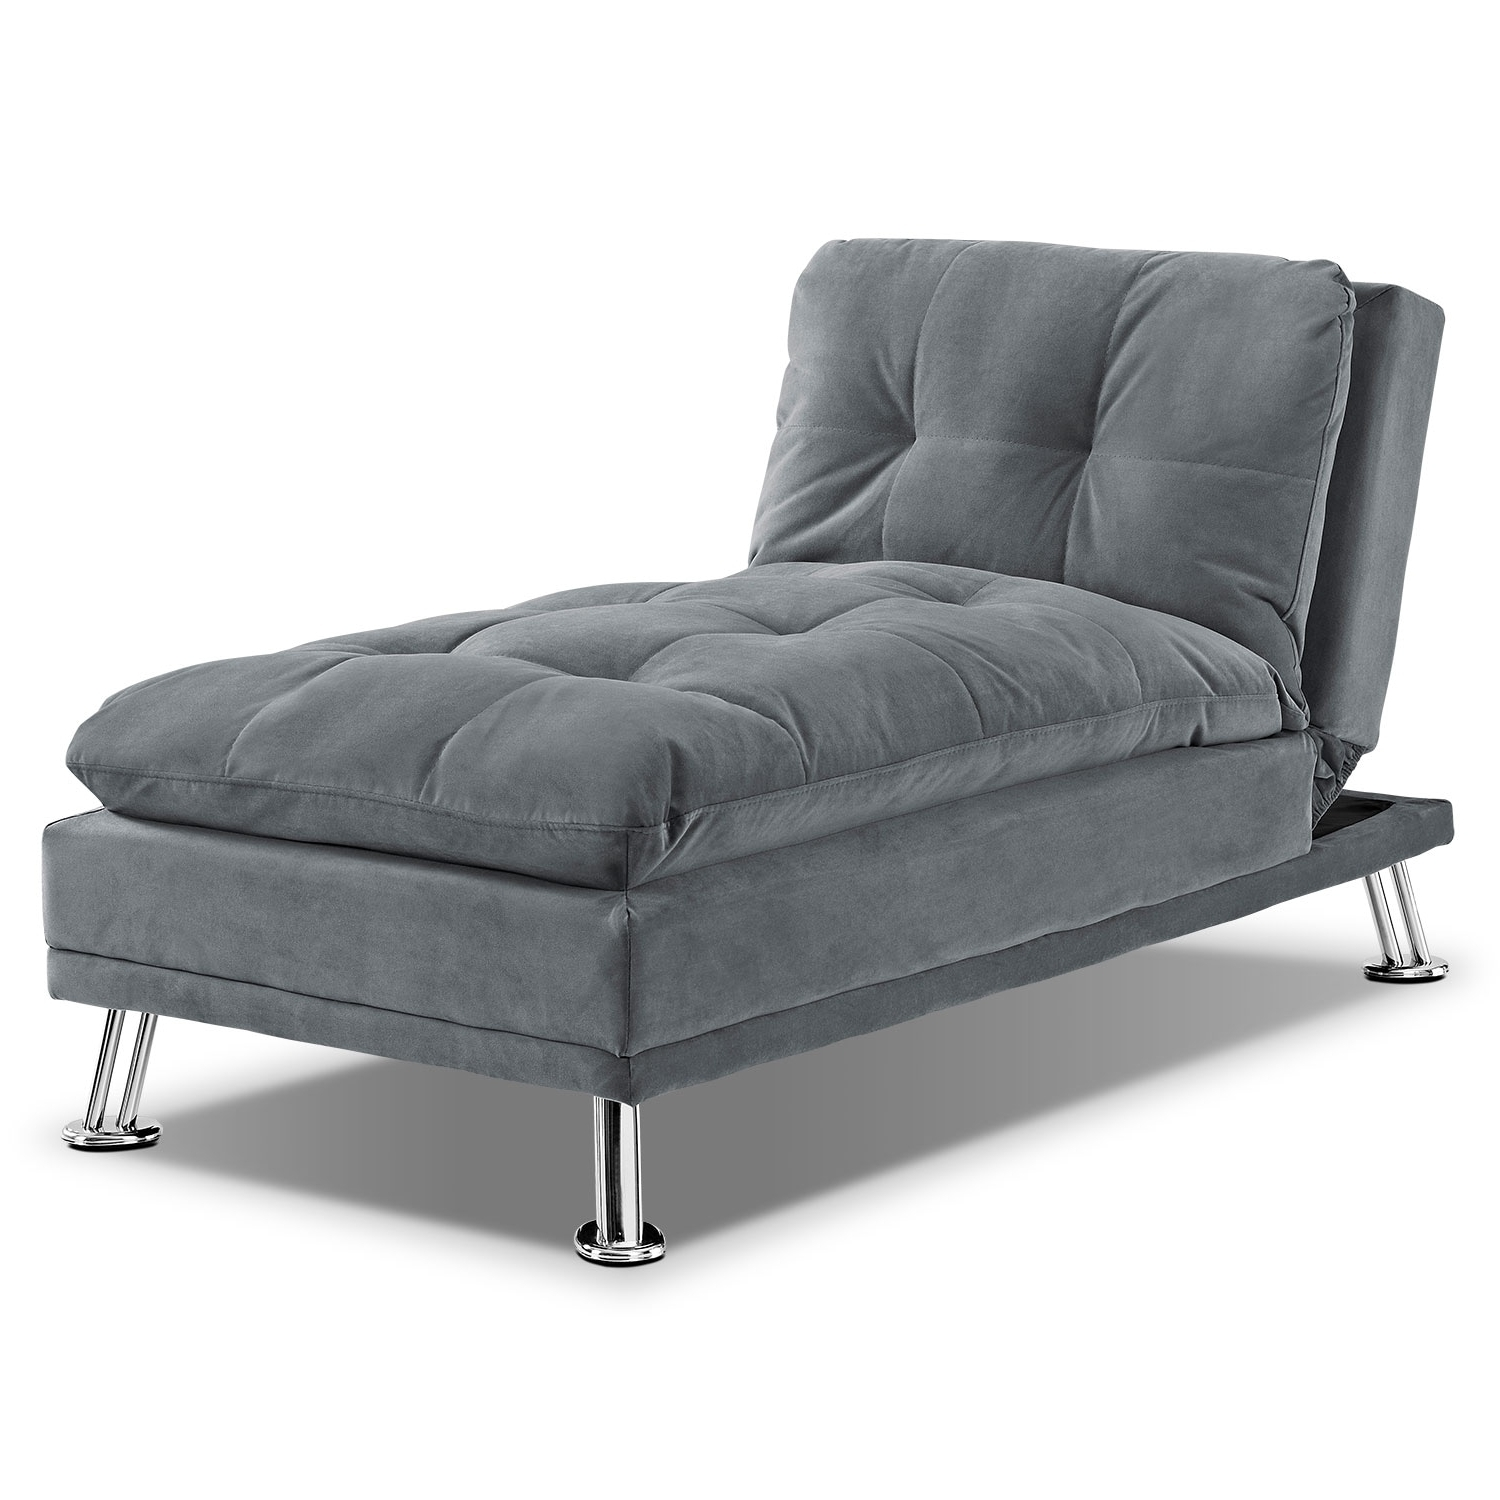 American Signature Furniture Intended For Current Futon Chaises (View 2 of 15)